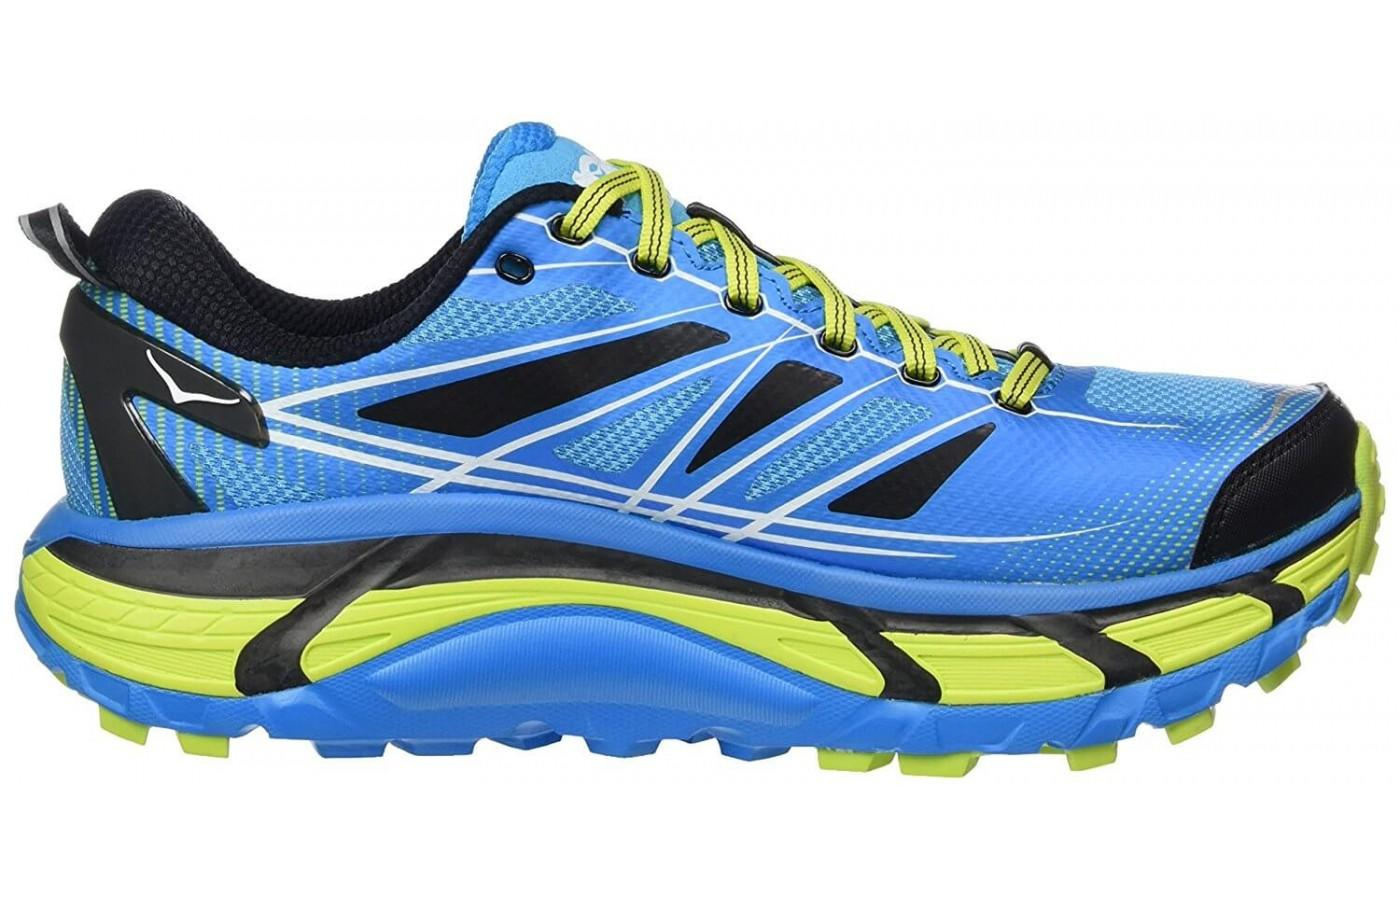 Hoka One One Mafate Speed 2 has a super thick midsole